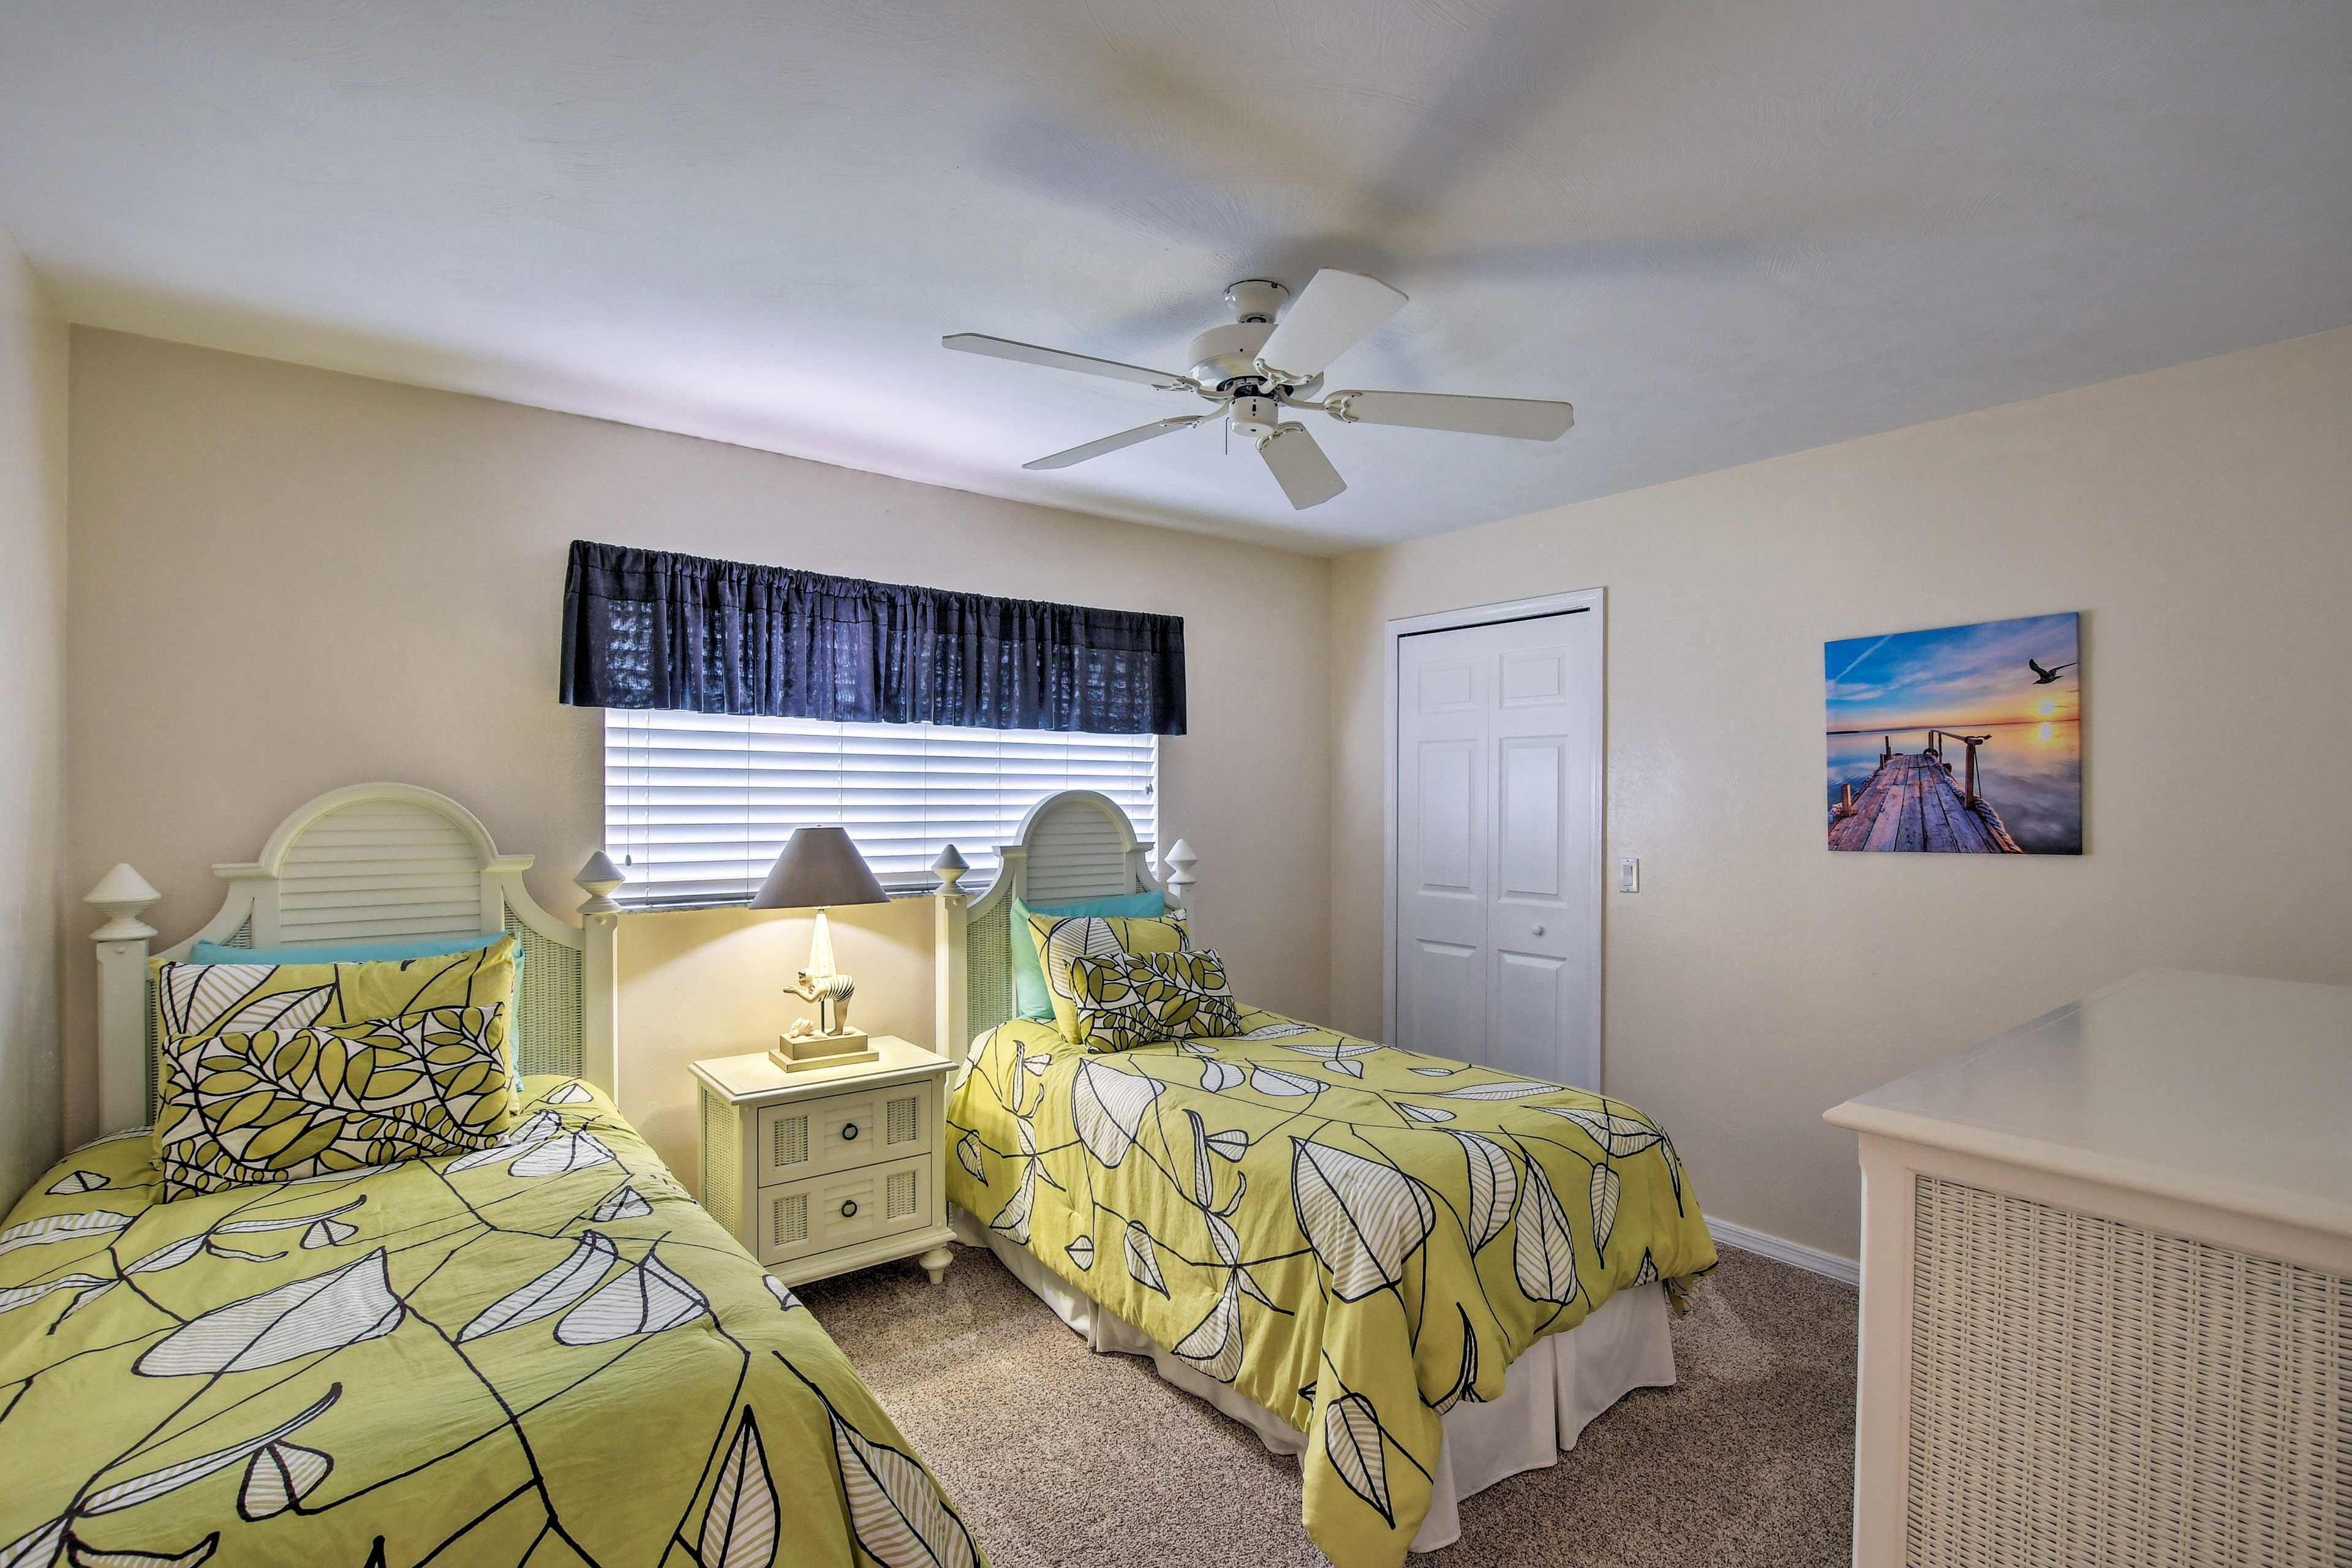 You don't have to be twins to sleep in this cozy room with 2 twin-sized beds.